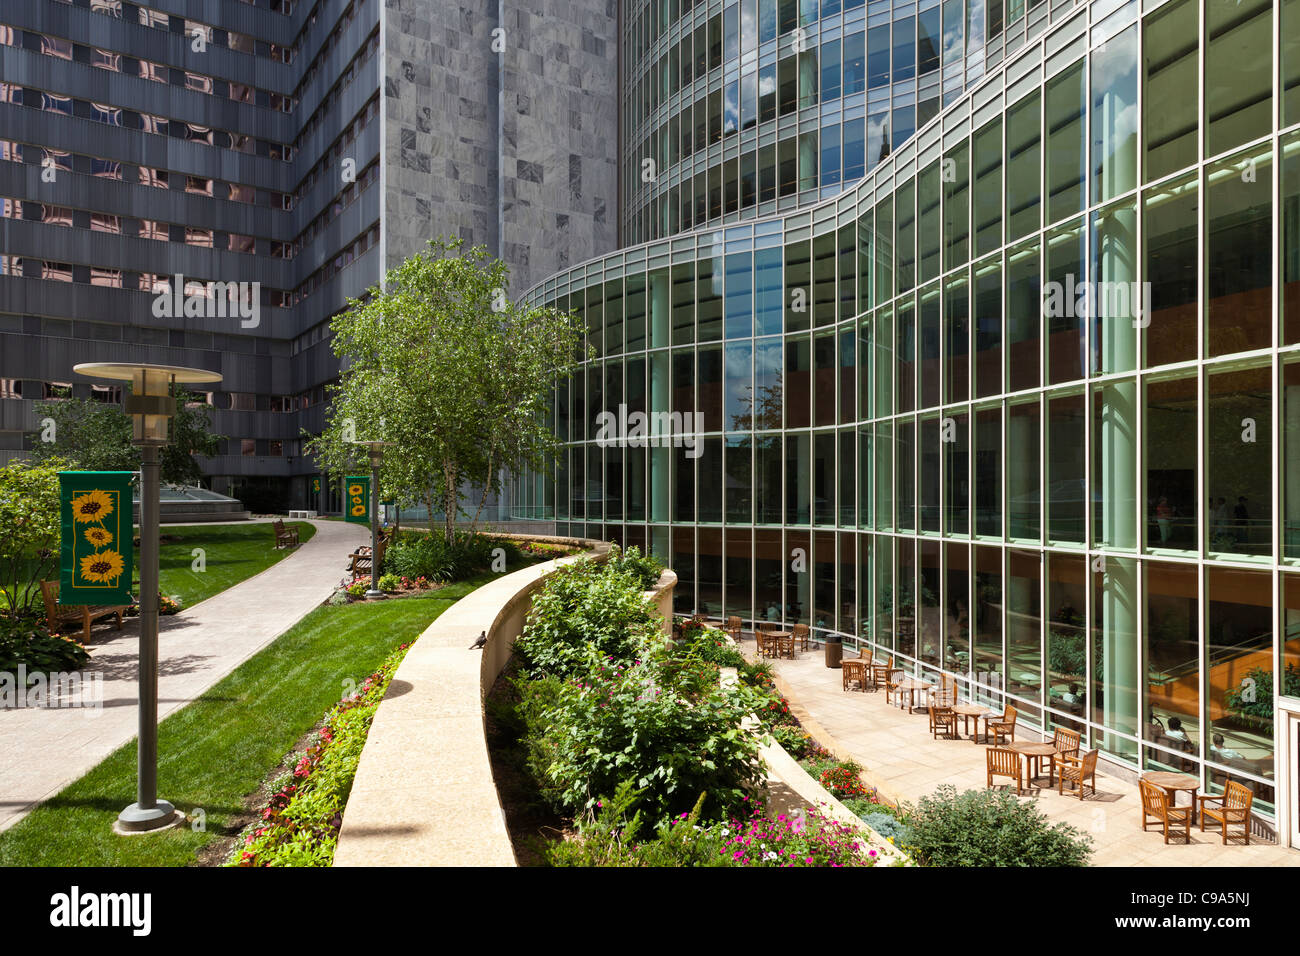 Mayo clinic nurse line rochester mn - Exterior View Of Gonda Building At Mayo Clinic In Rochester Mn Stock Image